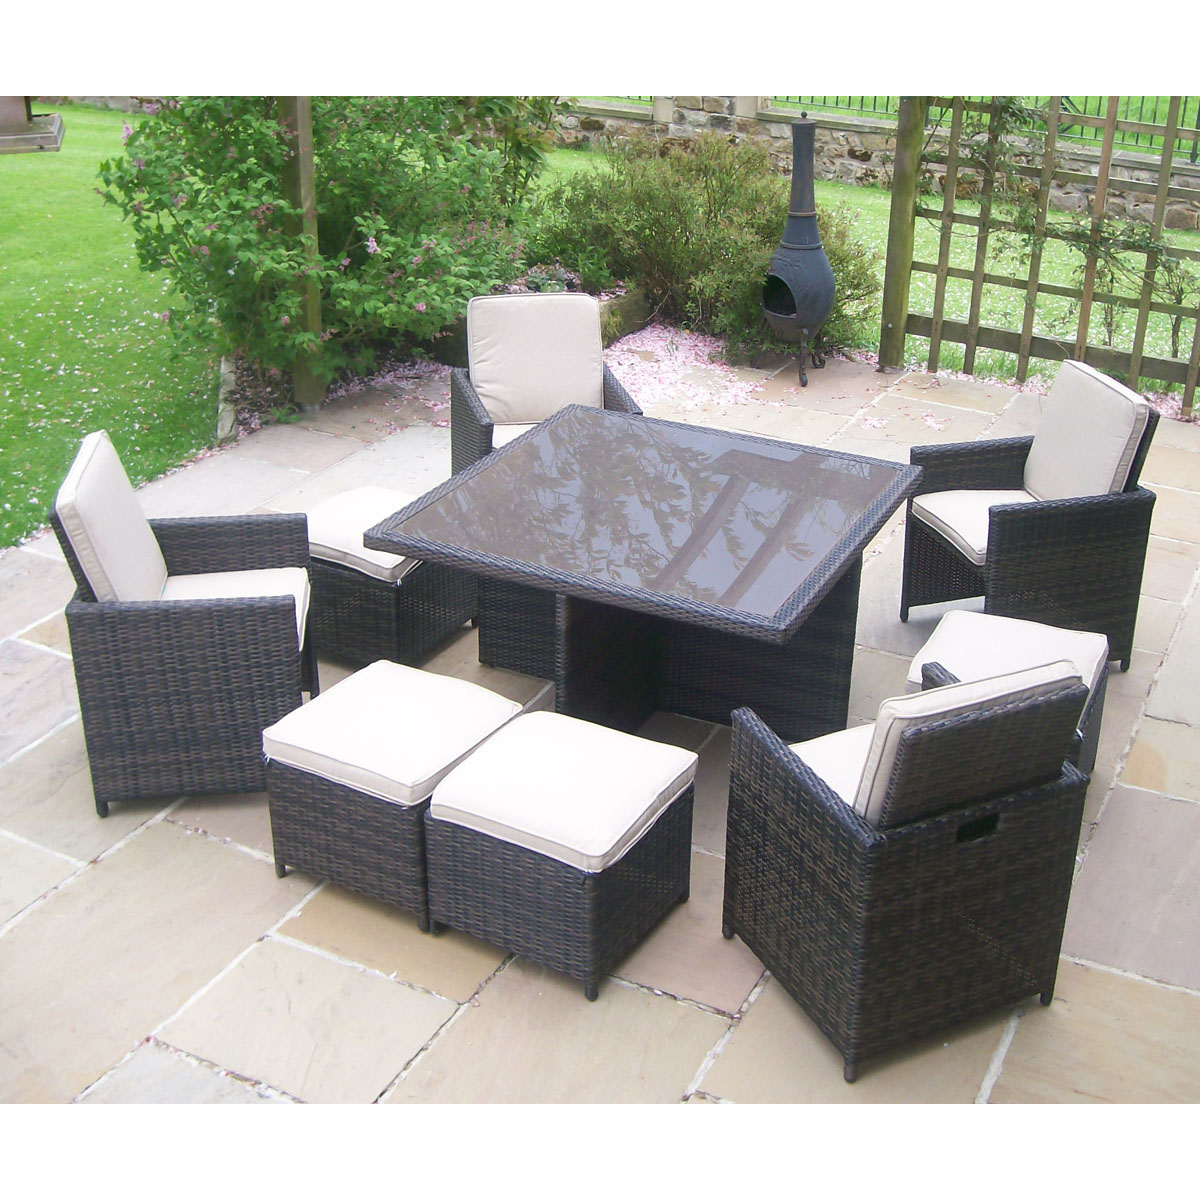 rattan table and chairs good office chair wicker garden furniture 4 patio set ebay